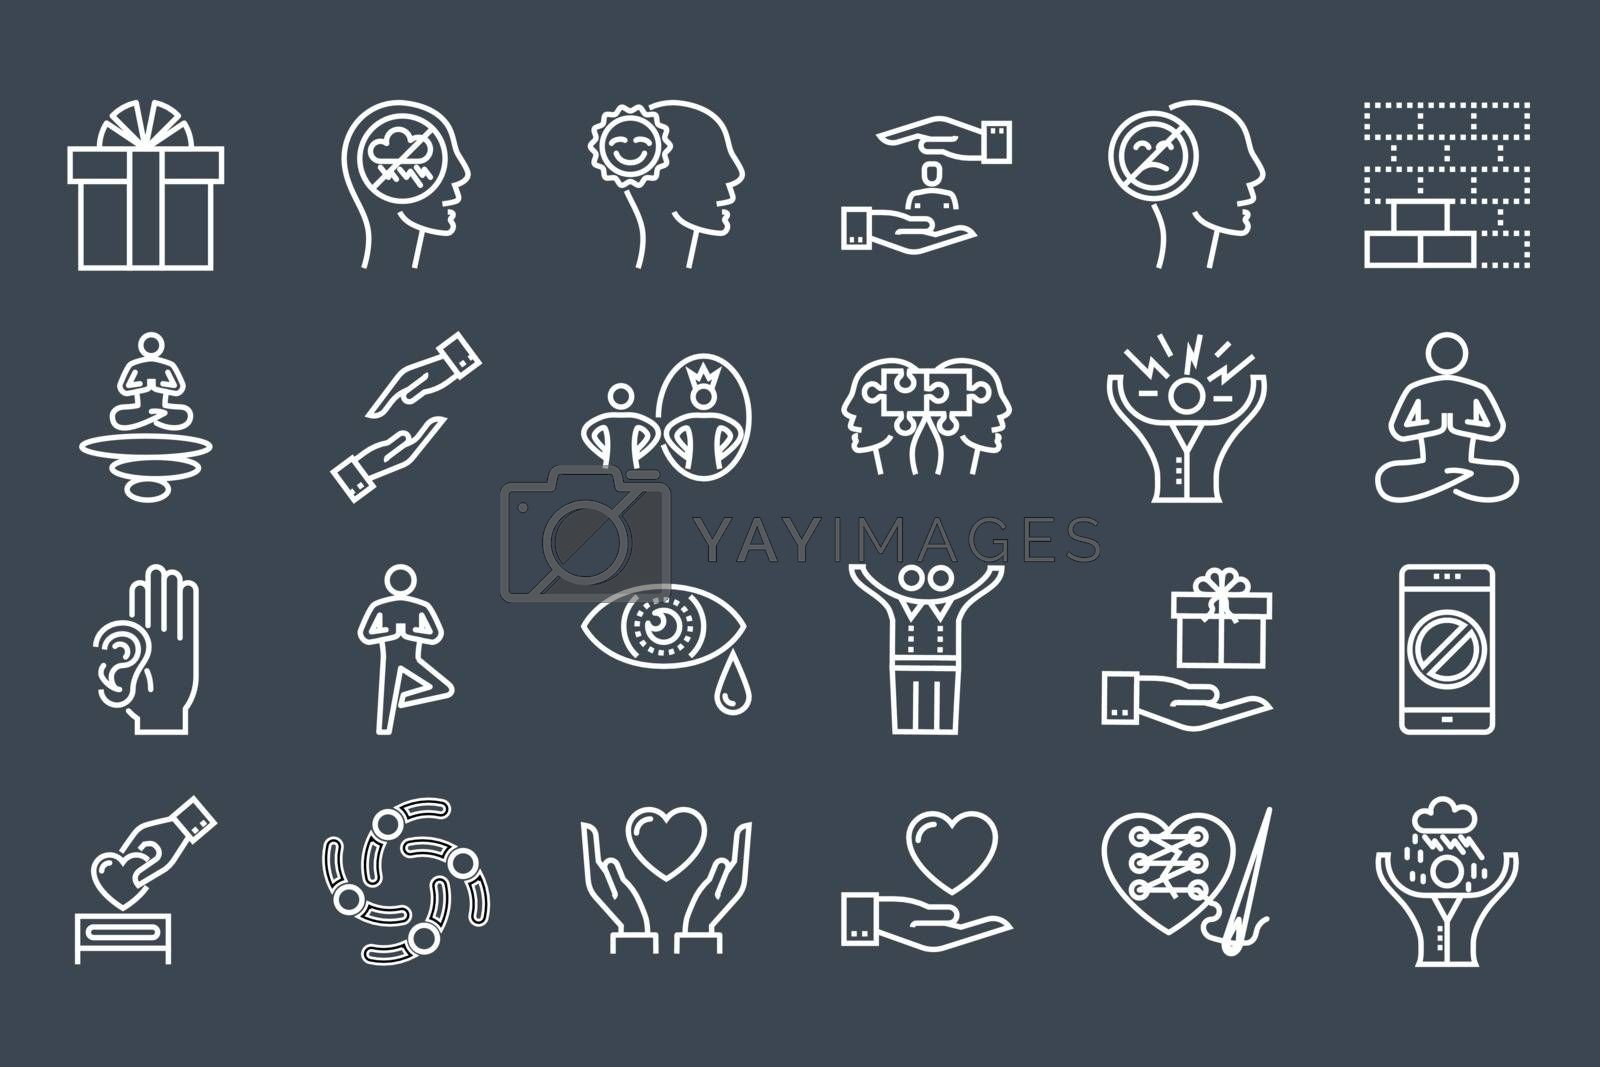 Conscious Living and Friends Relations Thin Line Related Icons Set. Isolated on Black Background. Simple Mono Linear Pictogram Pack Stroke Vector Logo Concept for Web. Editable Stroke.